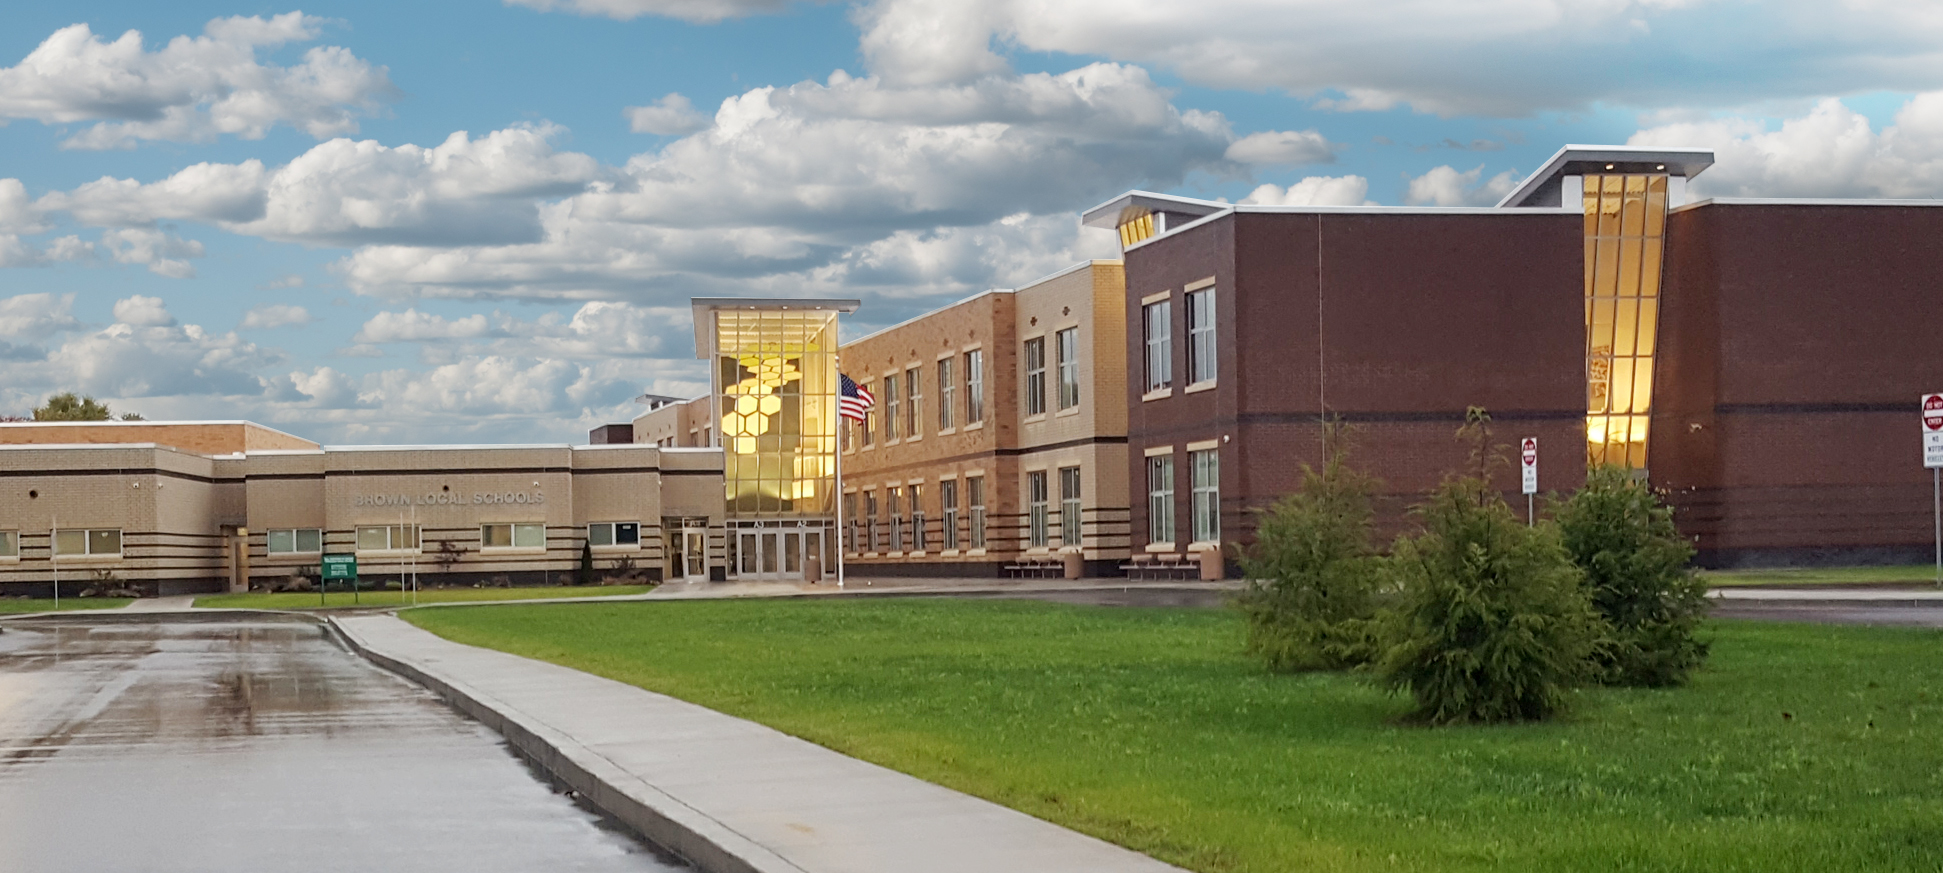 Brown Local School Exterior Ohio